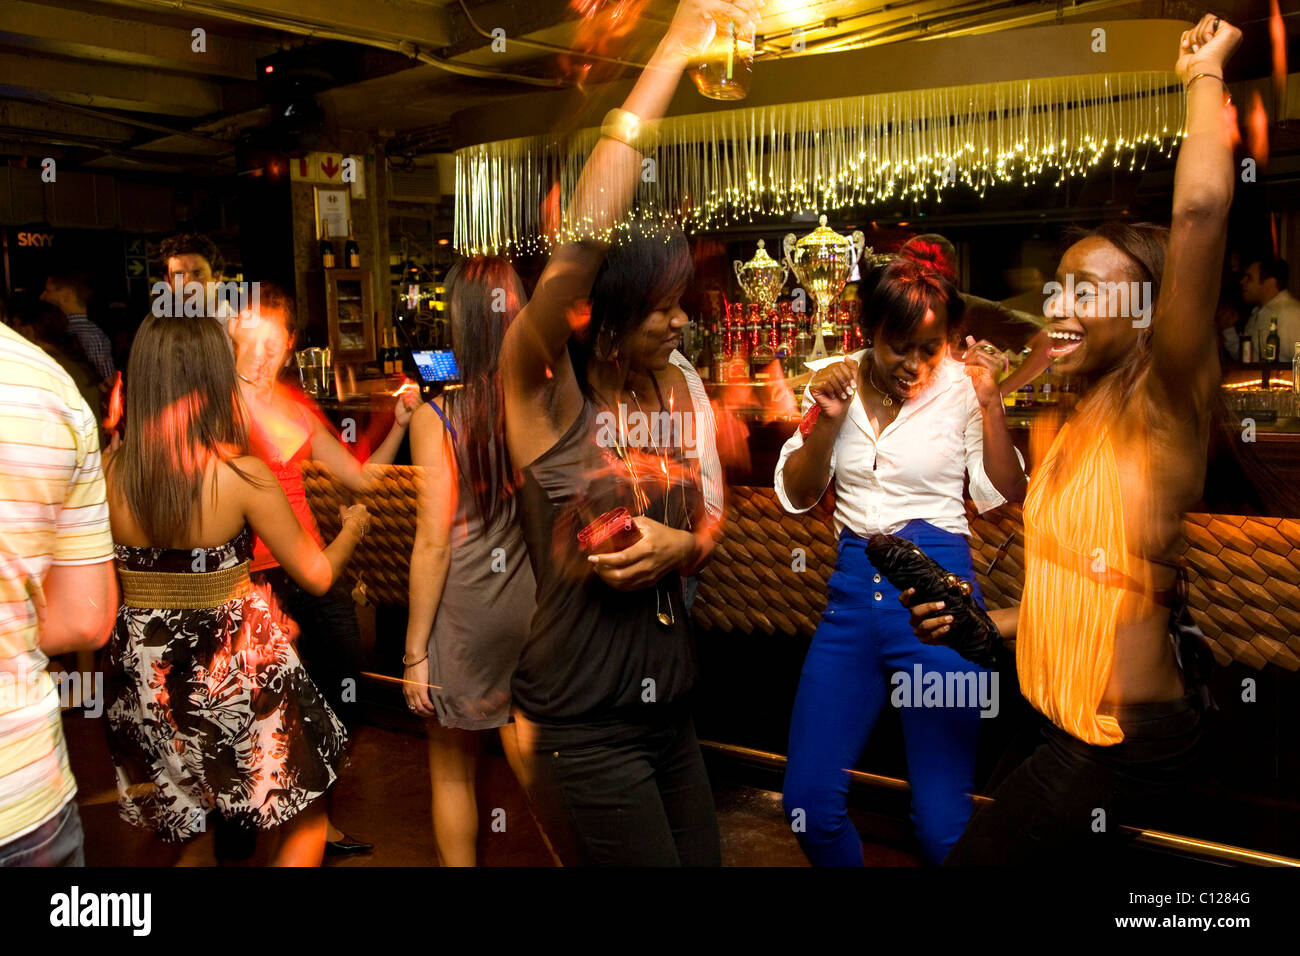 Hemisphere nightclub, party, dancing, Cape Town, Western Cape, South Africa, Africa - Stock Image